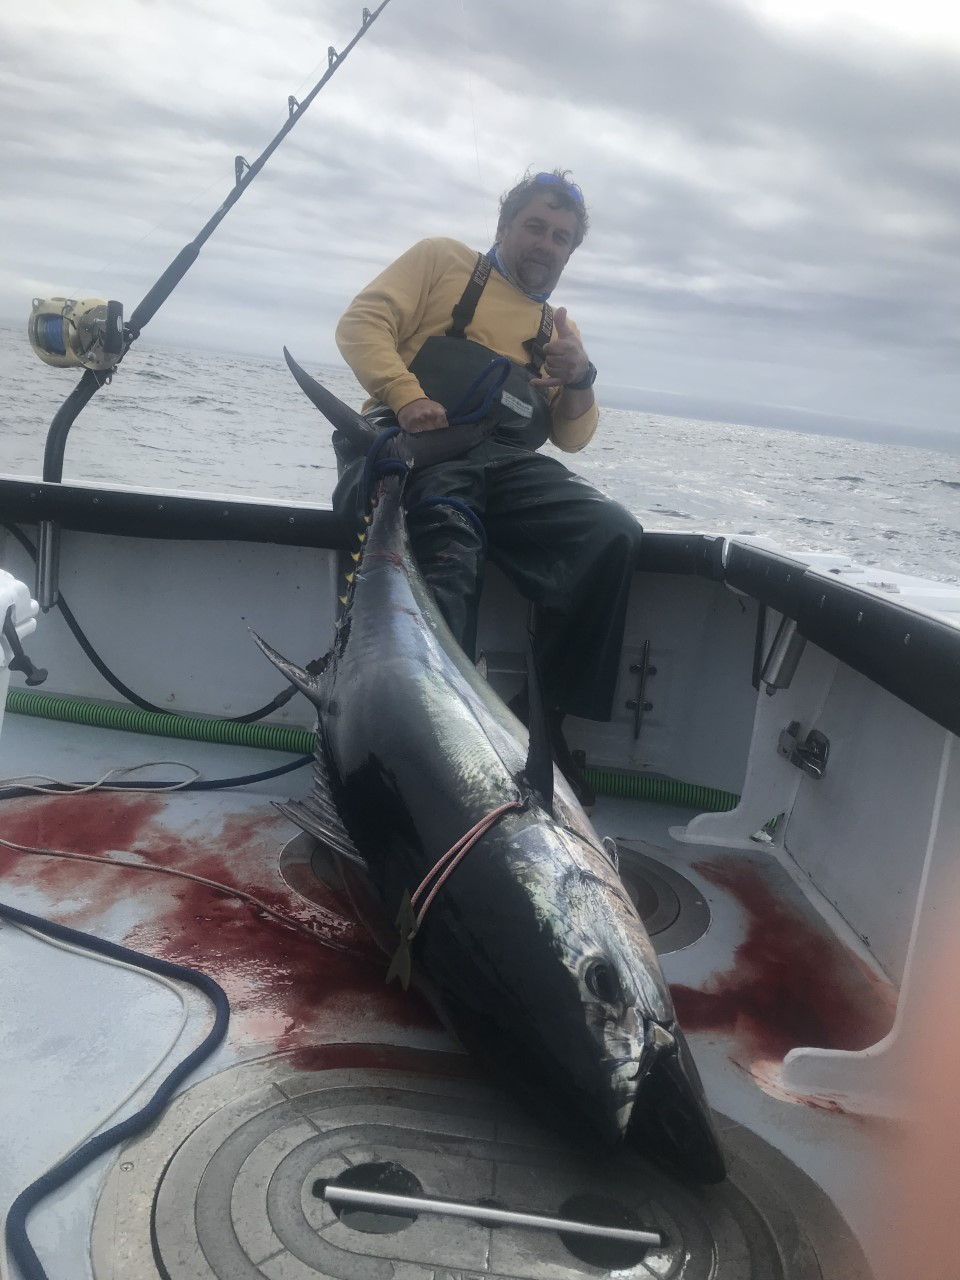 "Captain John of Fish Chatham Charters says the tuna bite at Crab Ledge is strong, with a bunch of bluefin catches this week in the 75"" range."